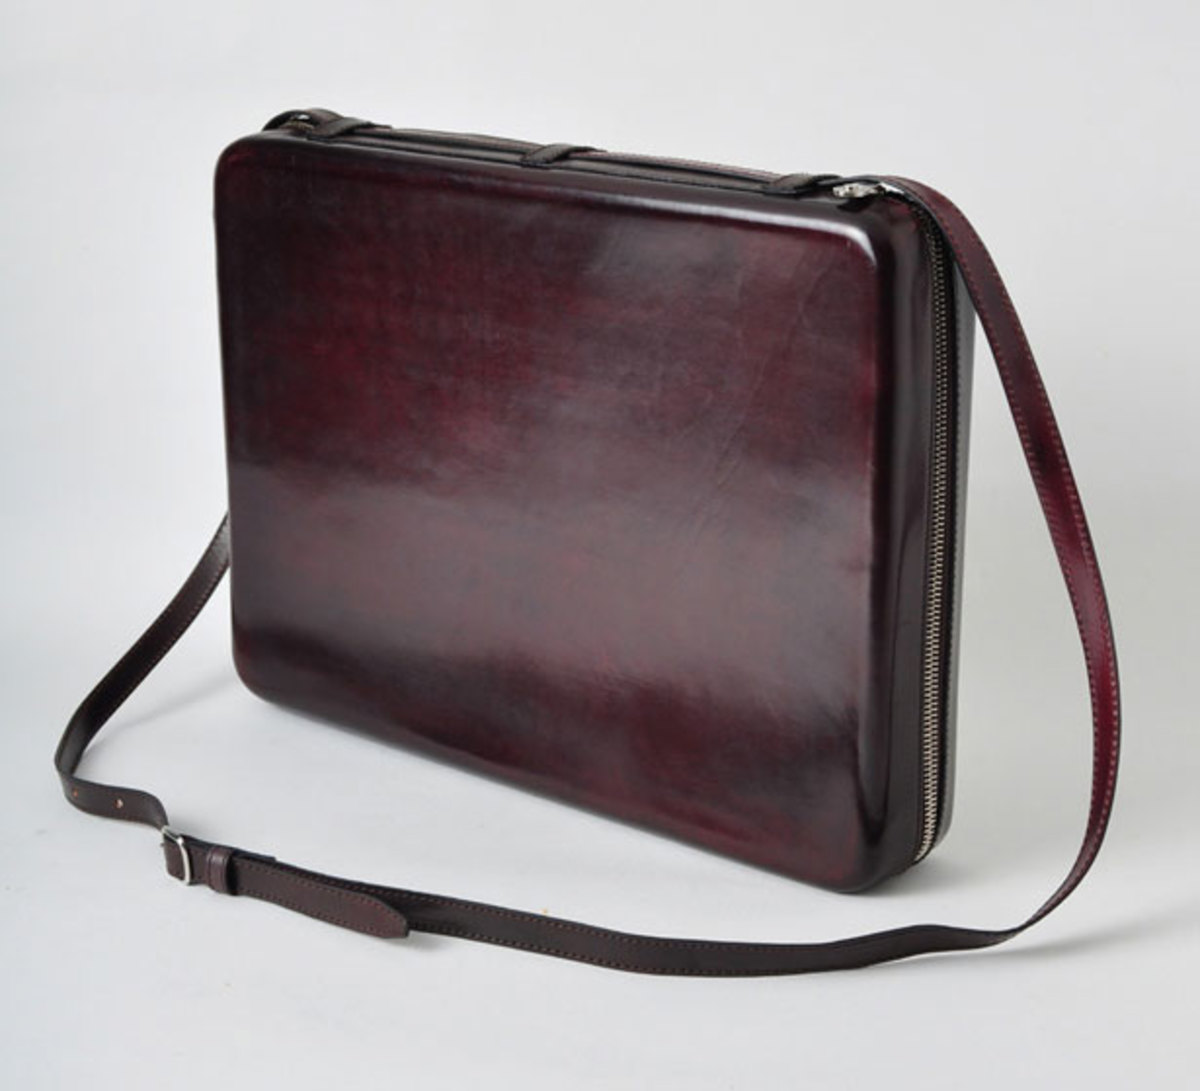 pv_aw11_Maison_Martin_Margiela_11_Leather_Laptop_Sleeve004